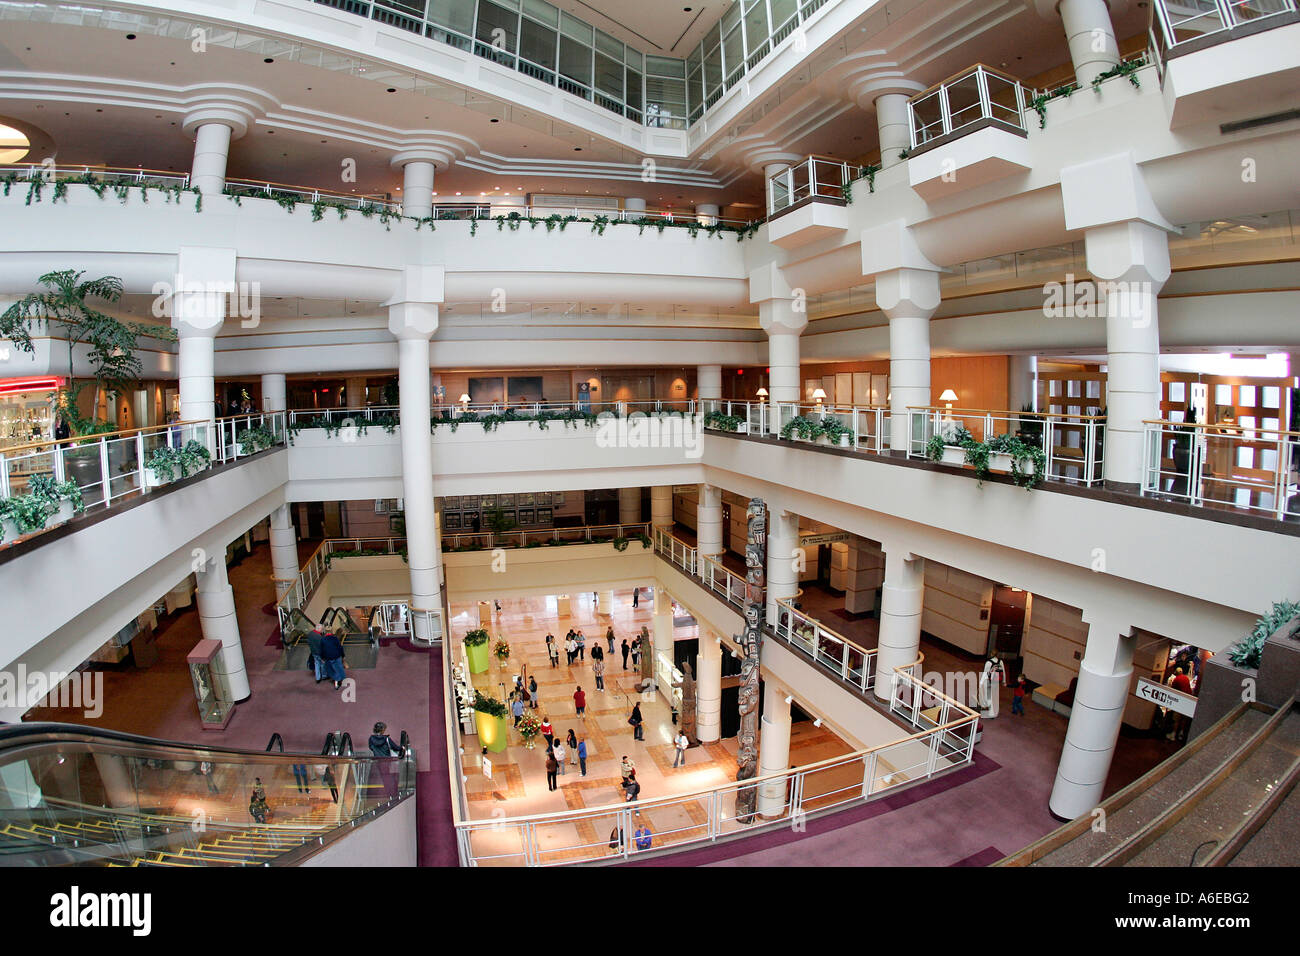 Classy interior of the Pan Pacific hotel in Vancouver, British Columbia, Canada - Stock Image